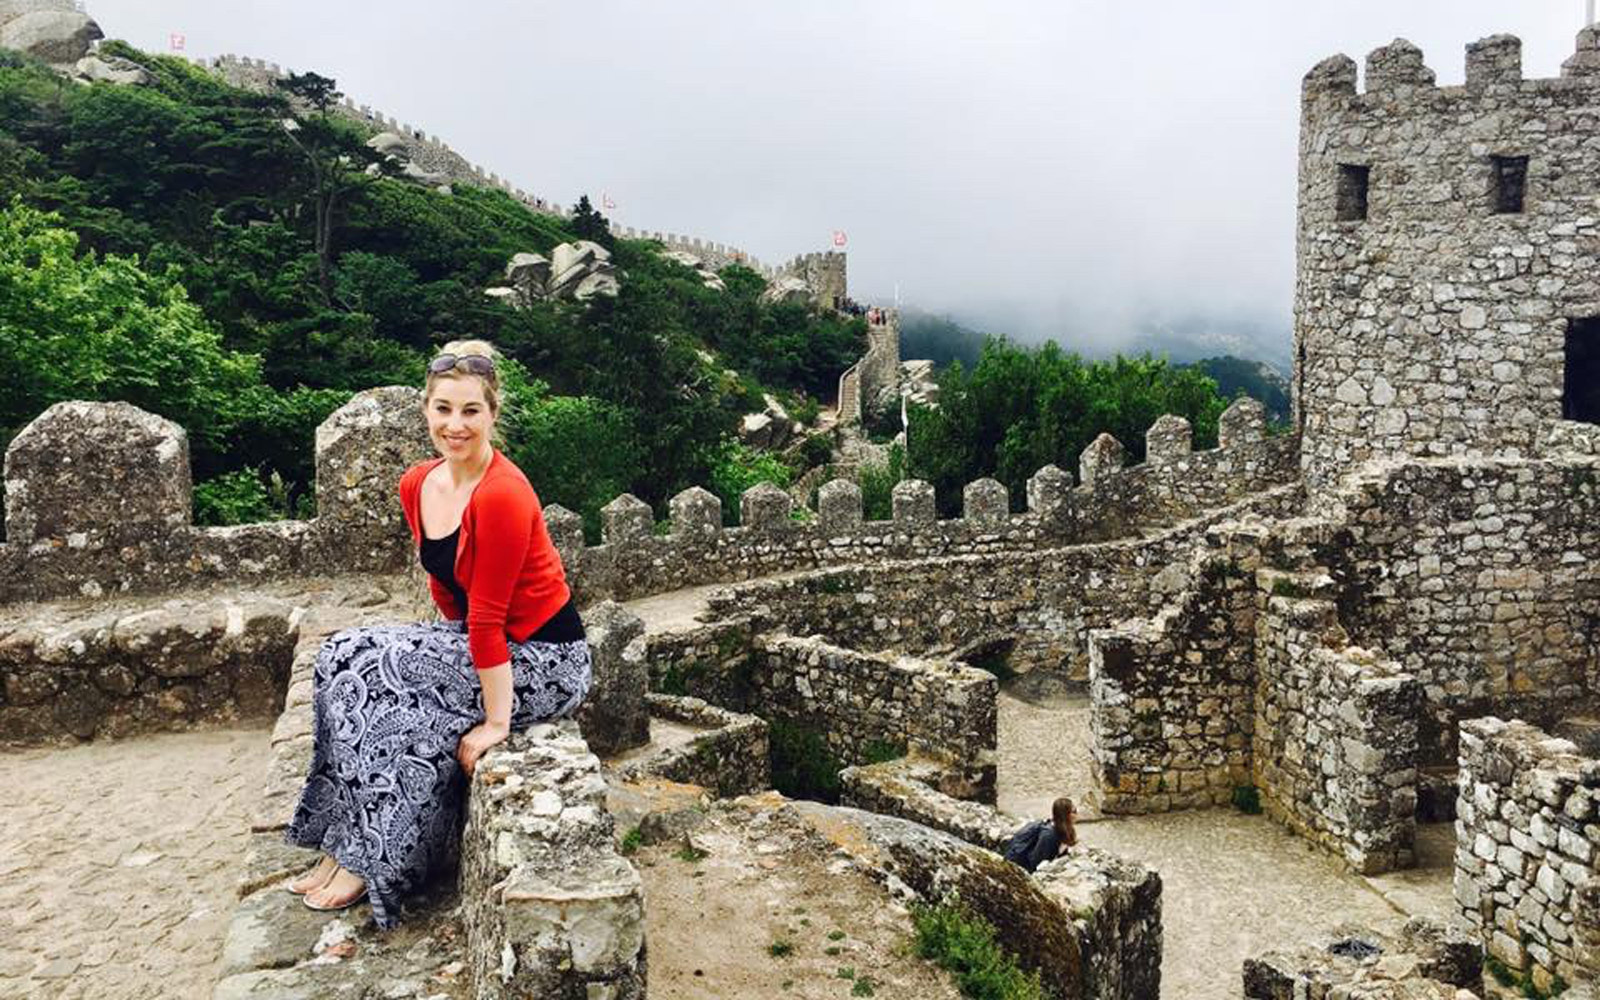 How a 28-year-old Lawyer Quit Her Job to Travel the World for Free